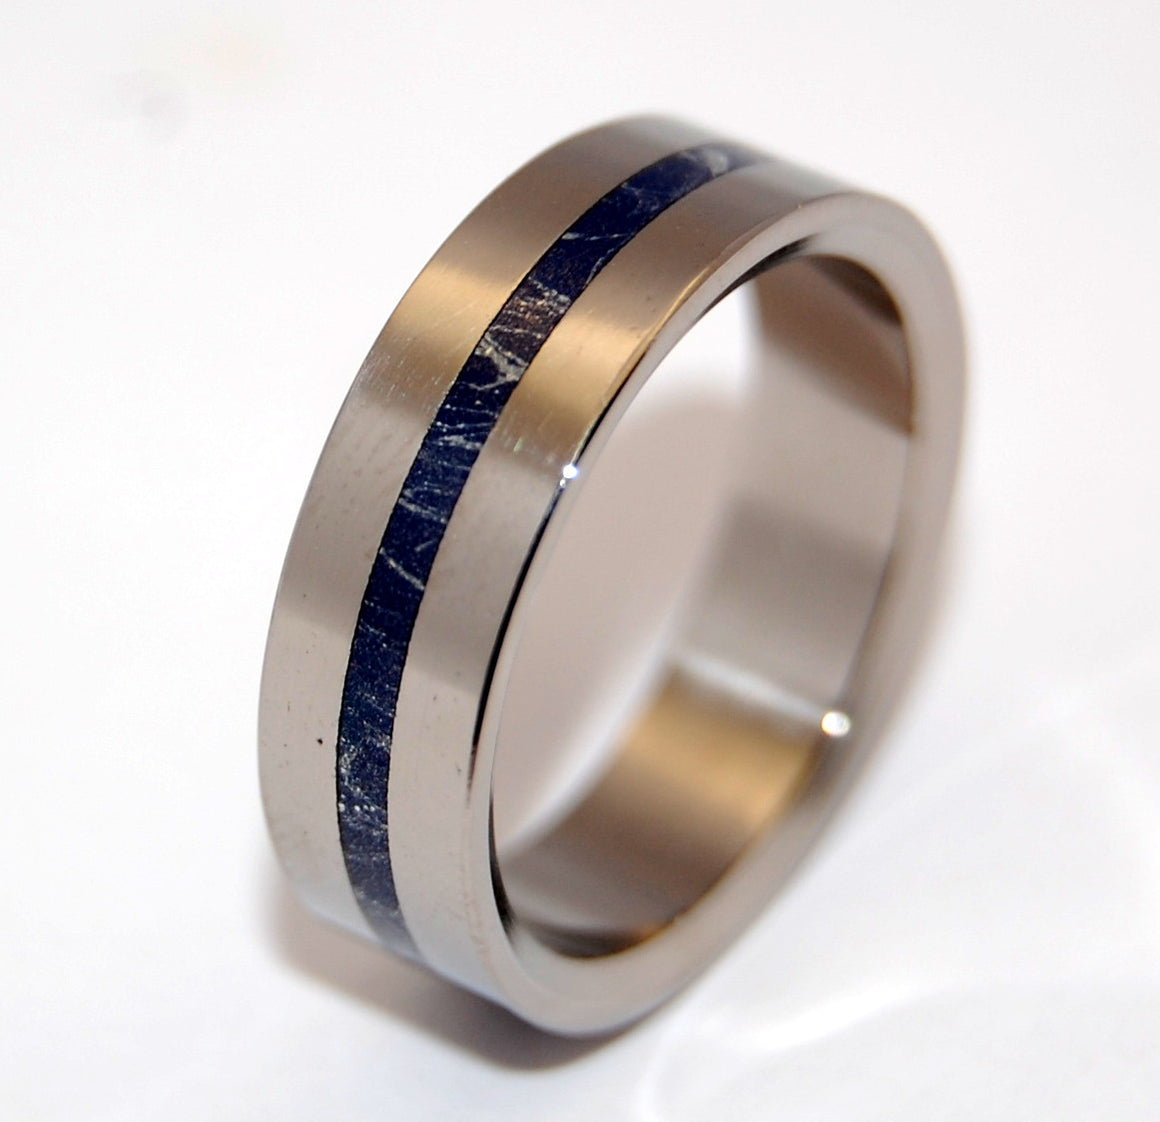 A LITTLE OF YOU | M3 & Titanium Wedding Ring - Minter and Richter Designs